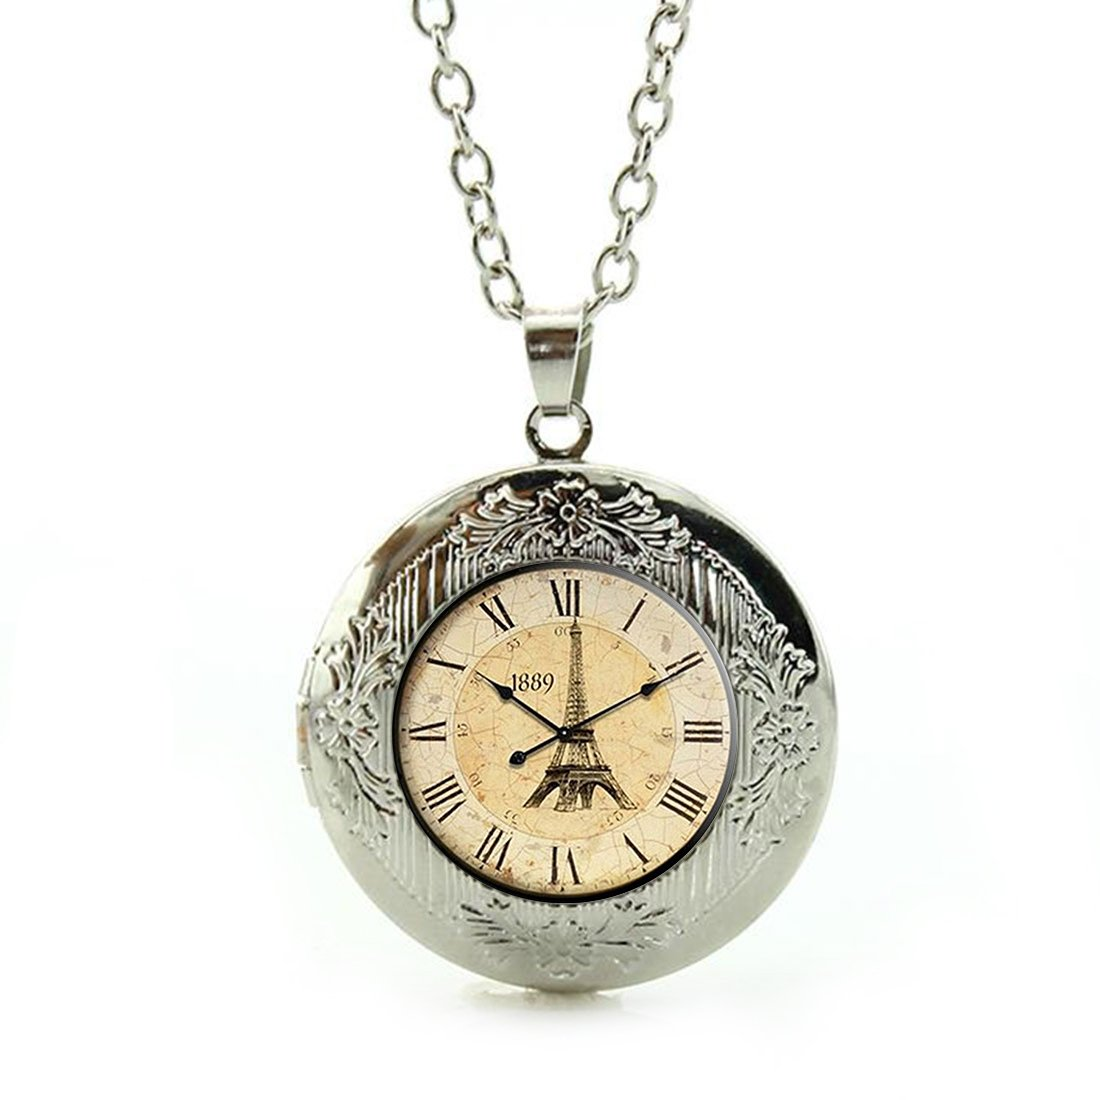 Women's Custom Locket Closure Pendant Necklace Retro Clock Included Free Silver Chain, Best Gift Set LooPoP KF-LSZBS-0015